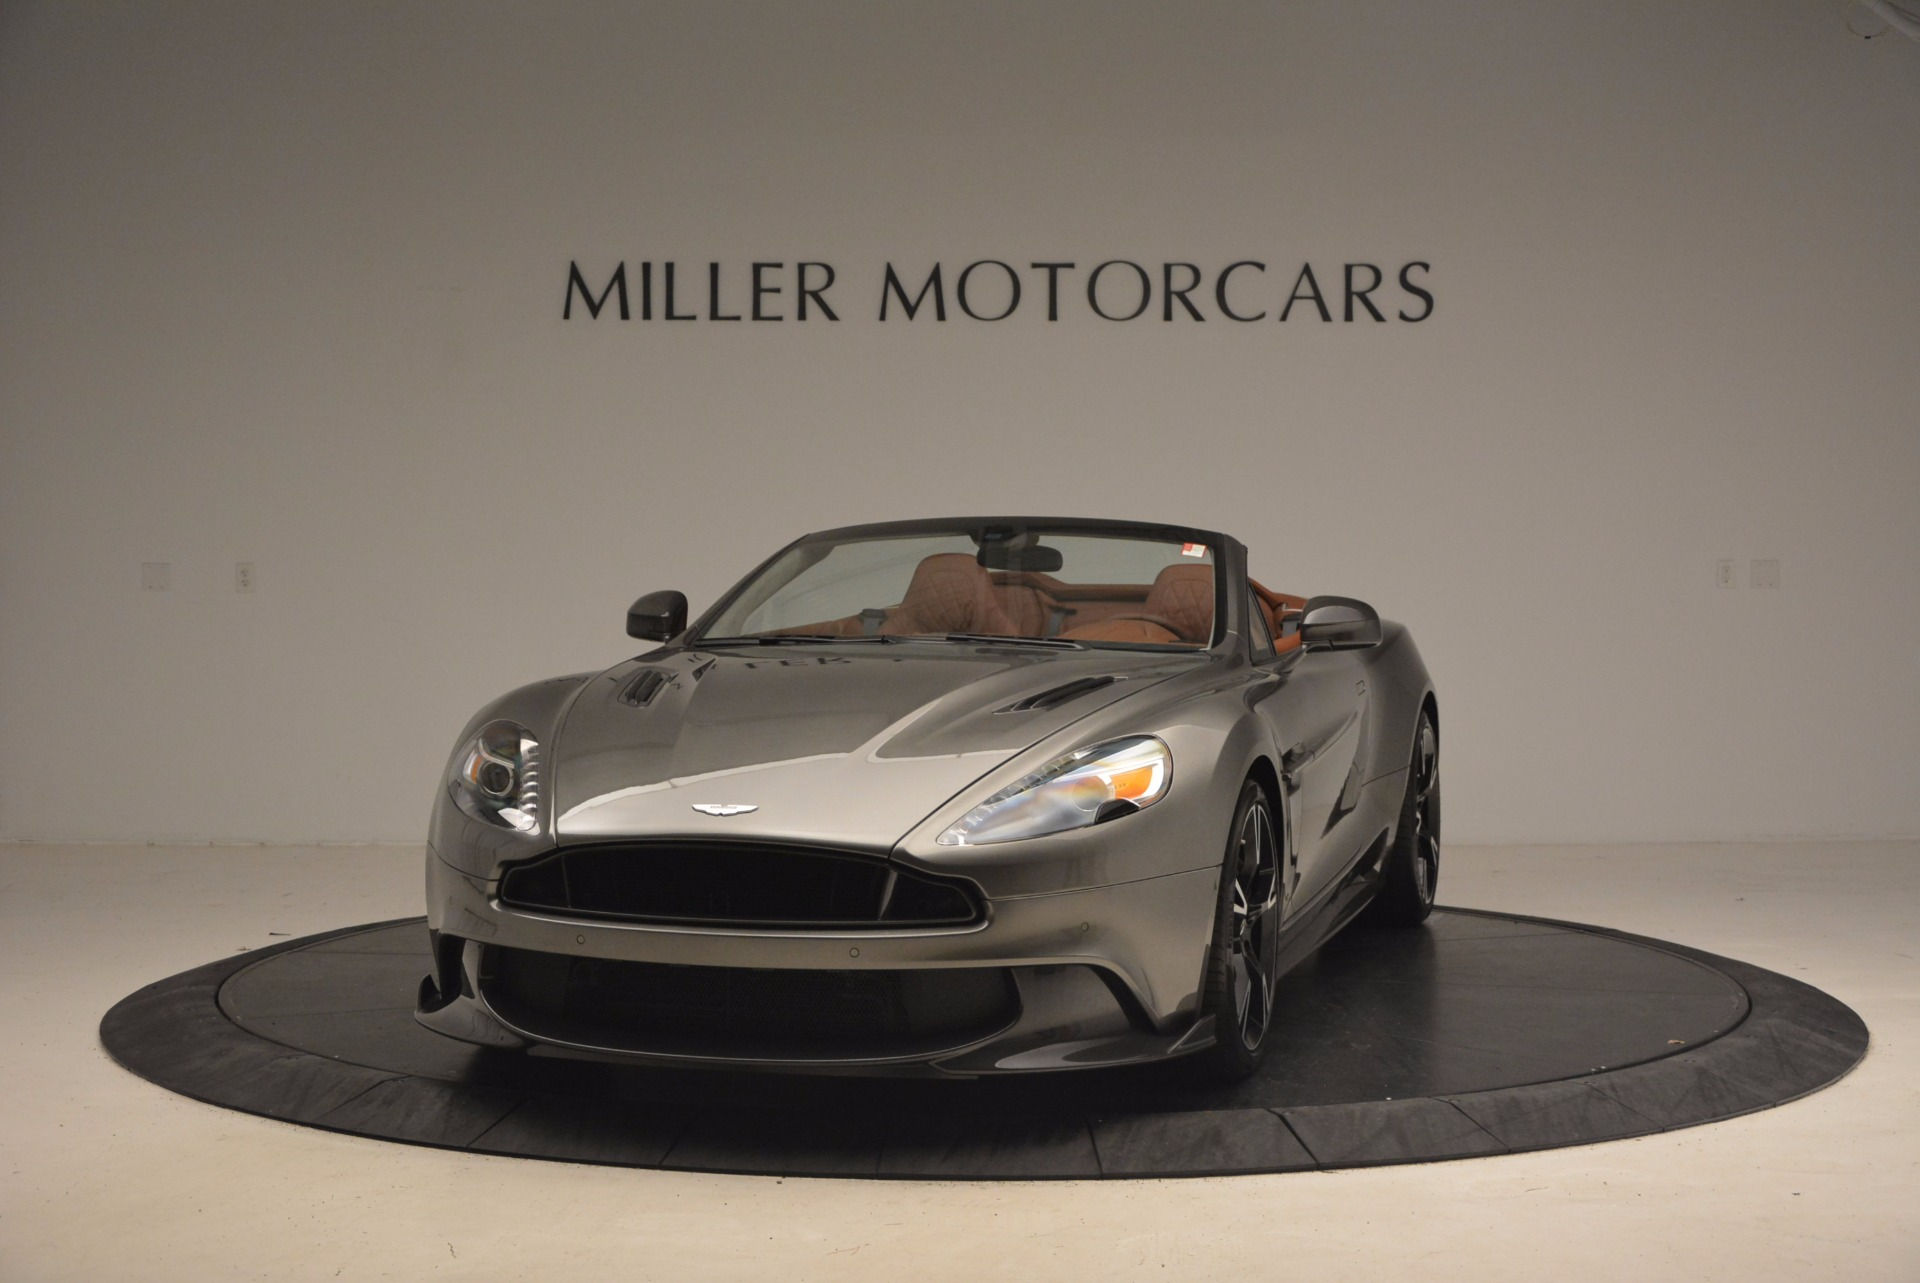 Used 2018 Aston Martin Vanquish S Convertible for sale Sold at Pagani of Greenwich in Greenwich CT 06830 1